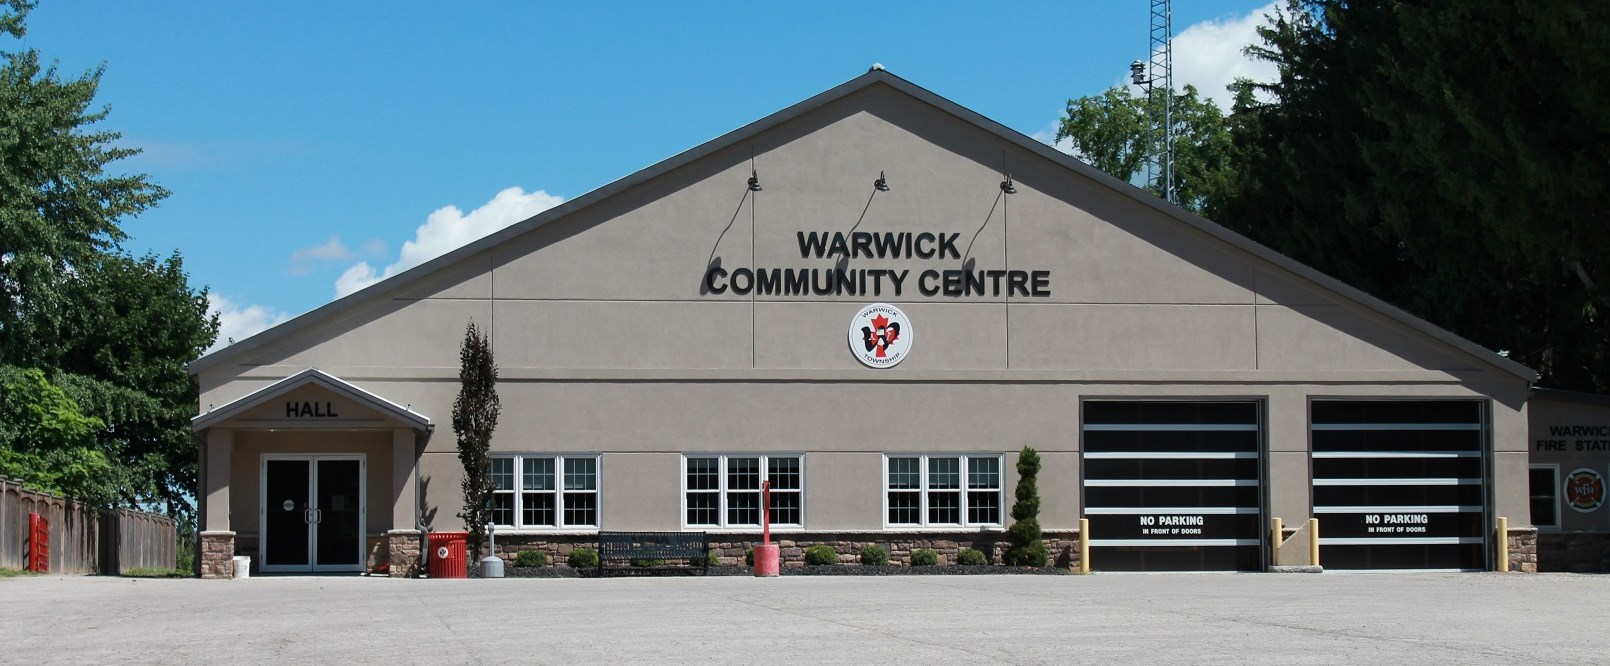 Warwick Community Centre building